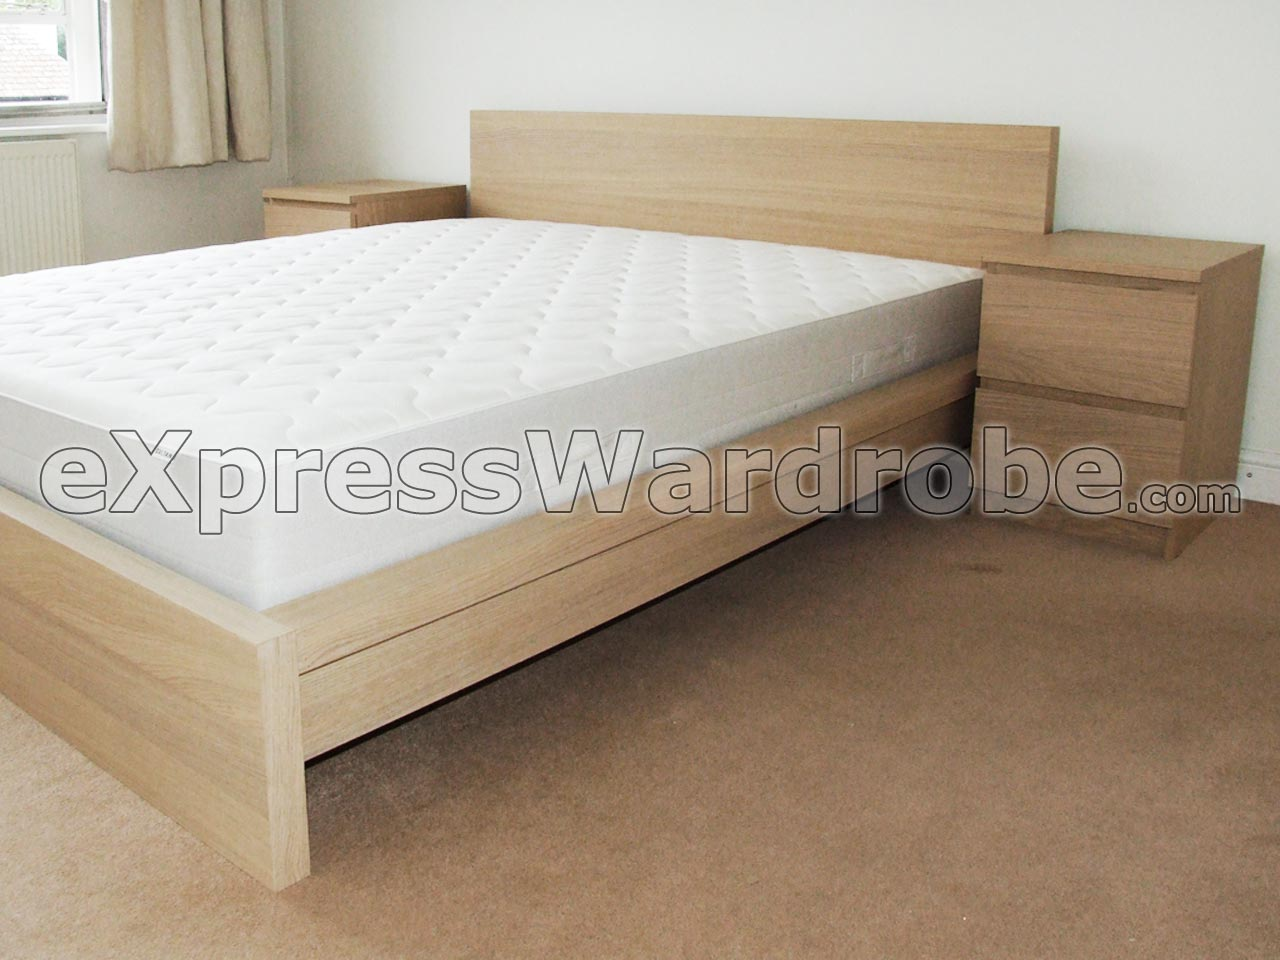 Ikea Drawers Gumtree Sydney ~ Ikea Hopen Bedroom Wardrobes Single Ikea Hopen Wardrobe  Bed Mattress